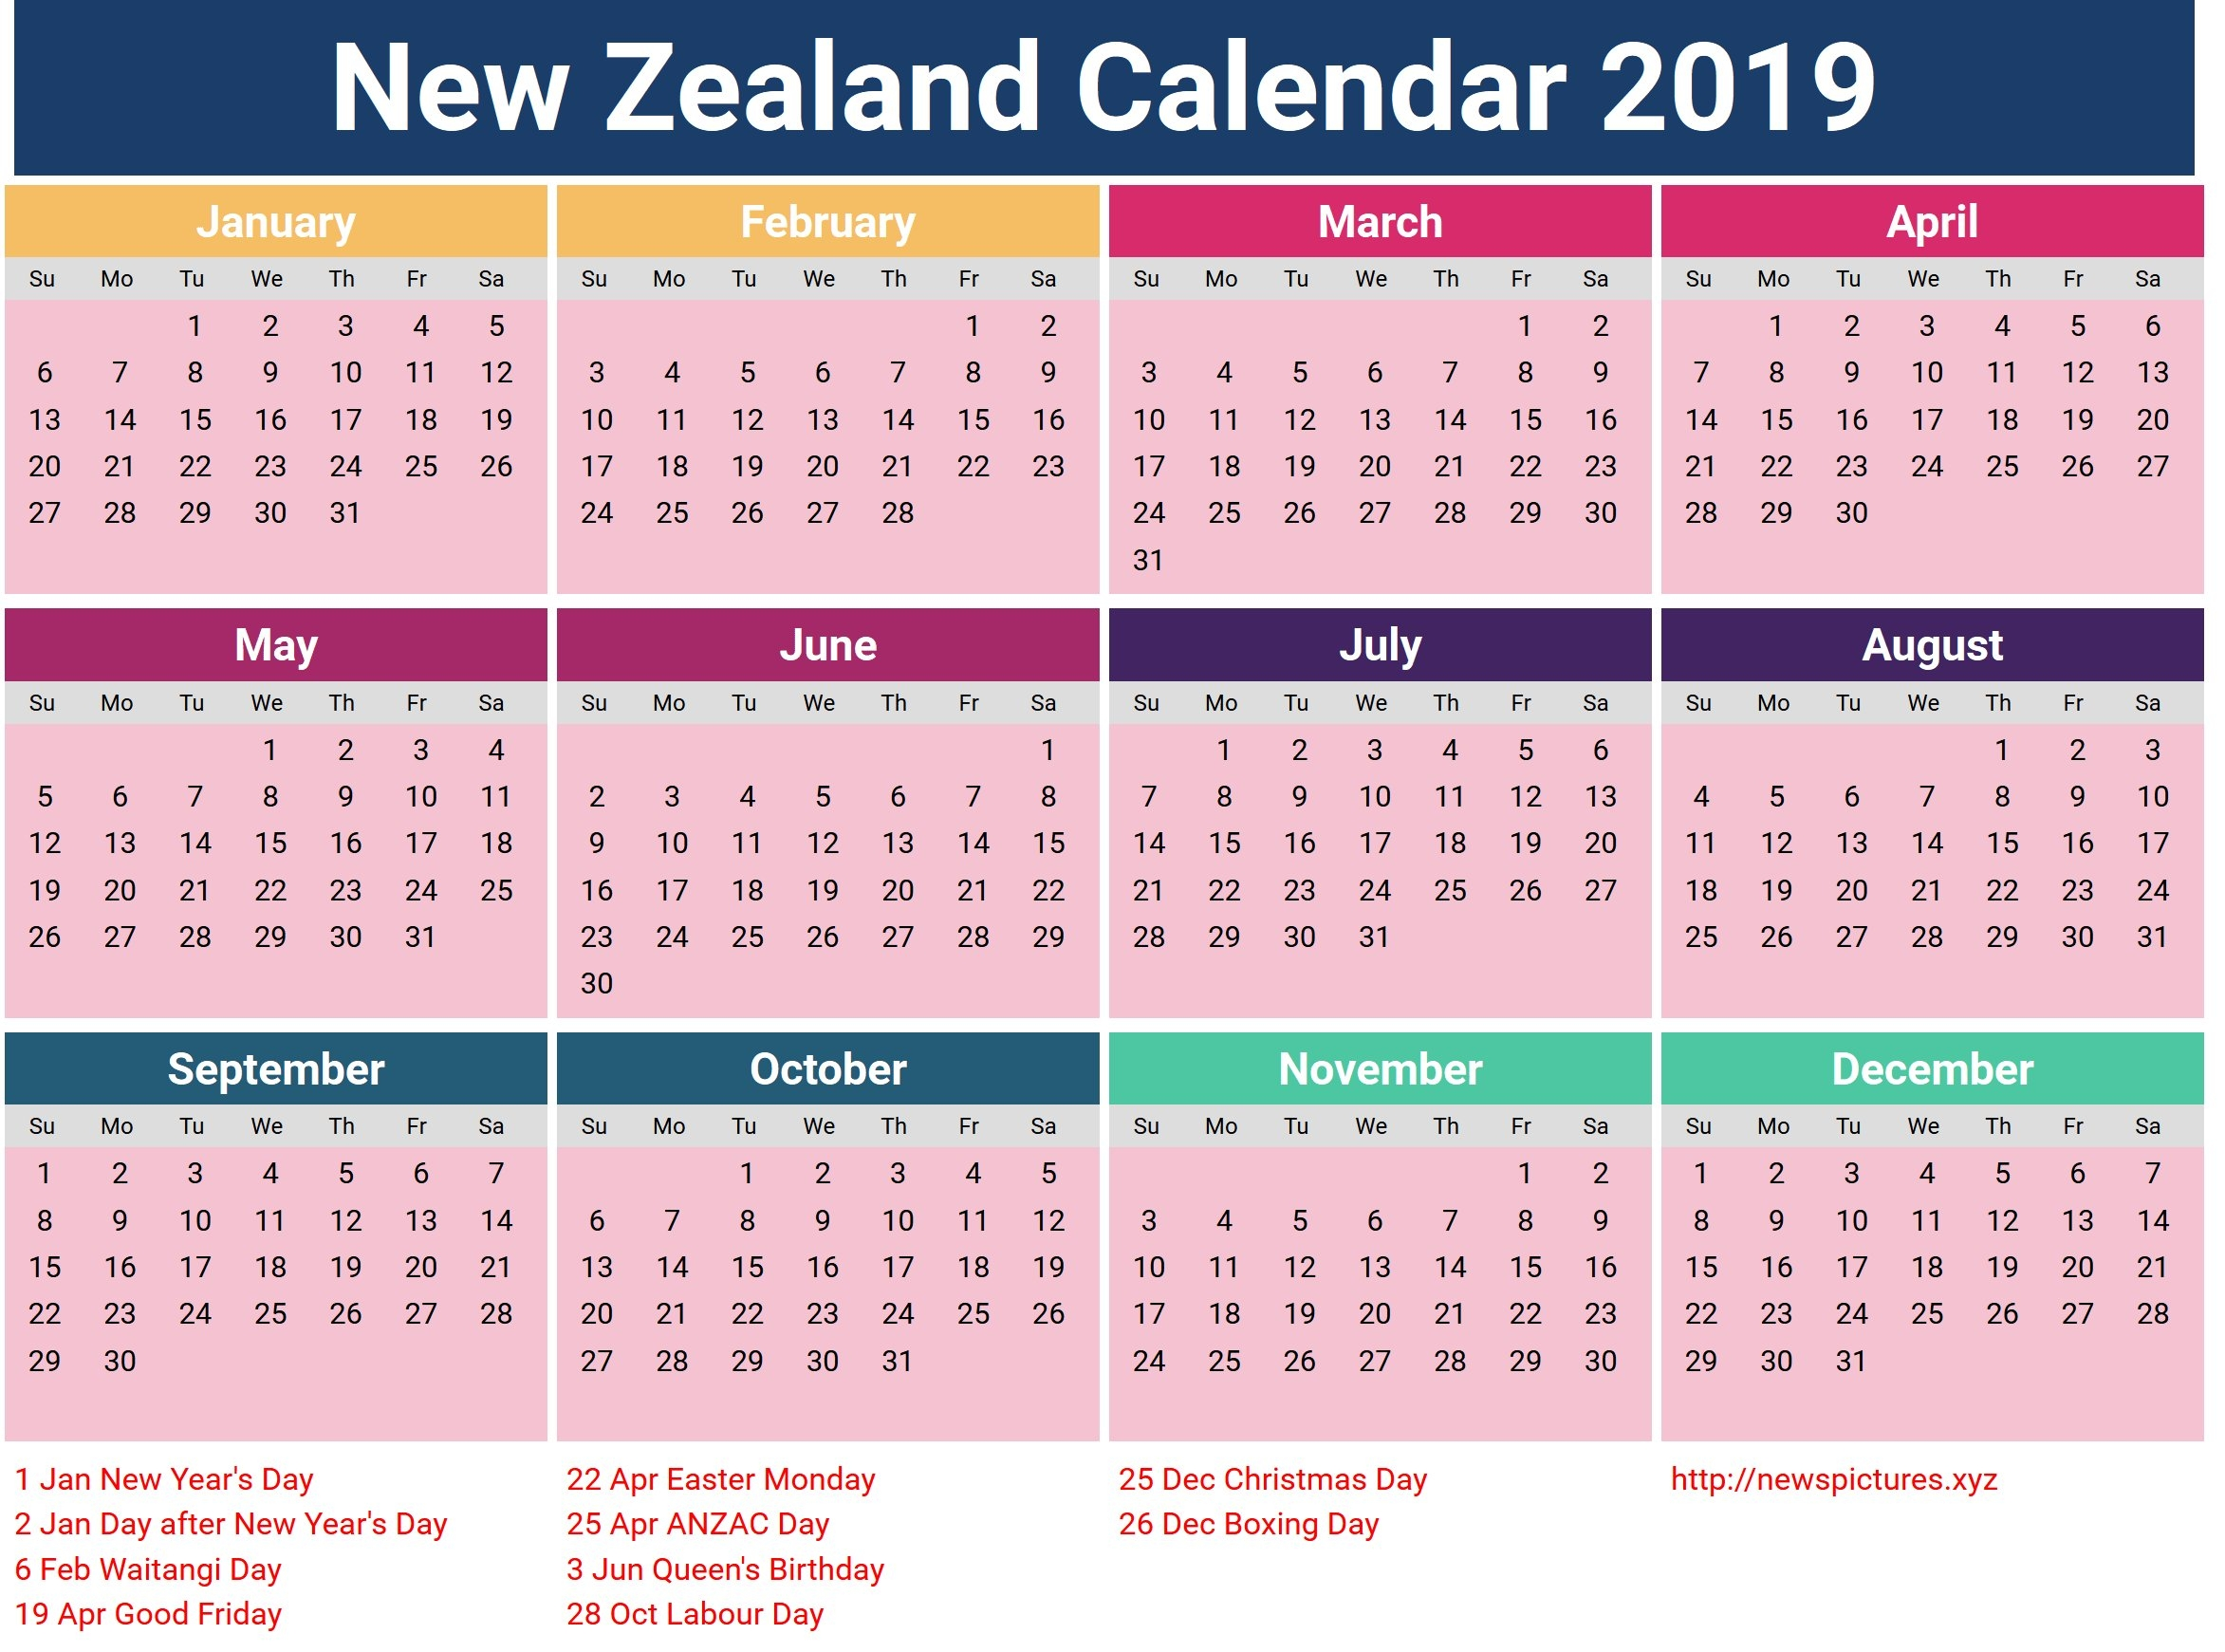 Year 2019 Calendar Nz - Littledelhisf Calendar 2019 Zealand